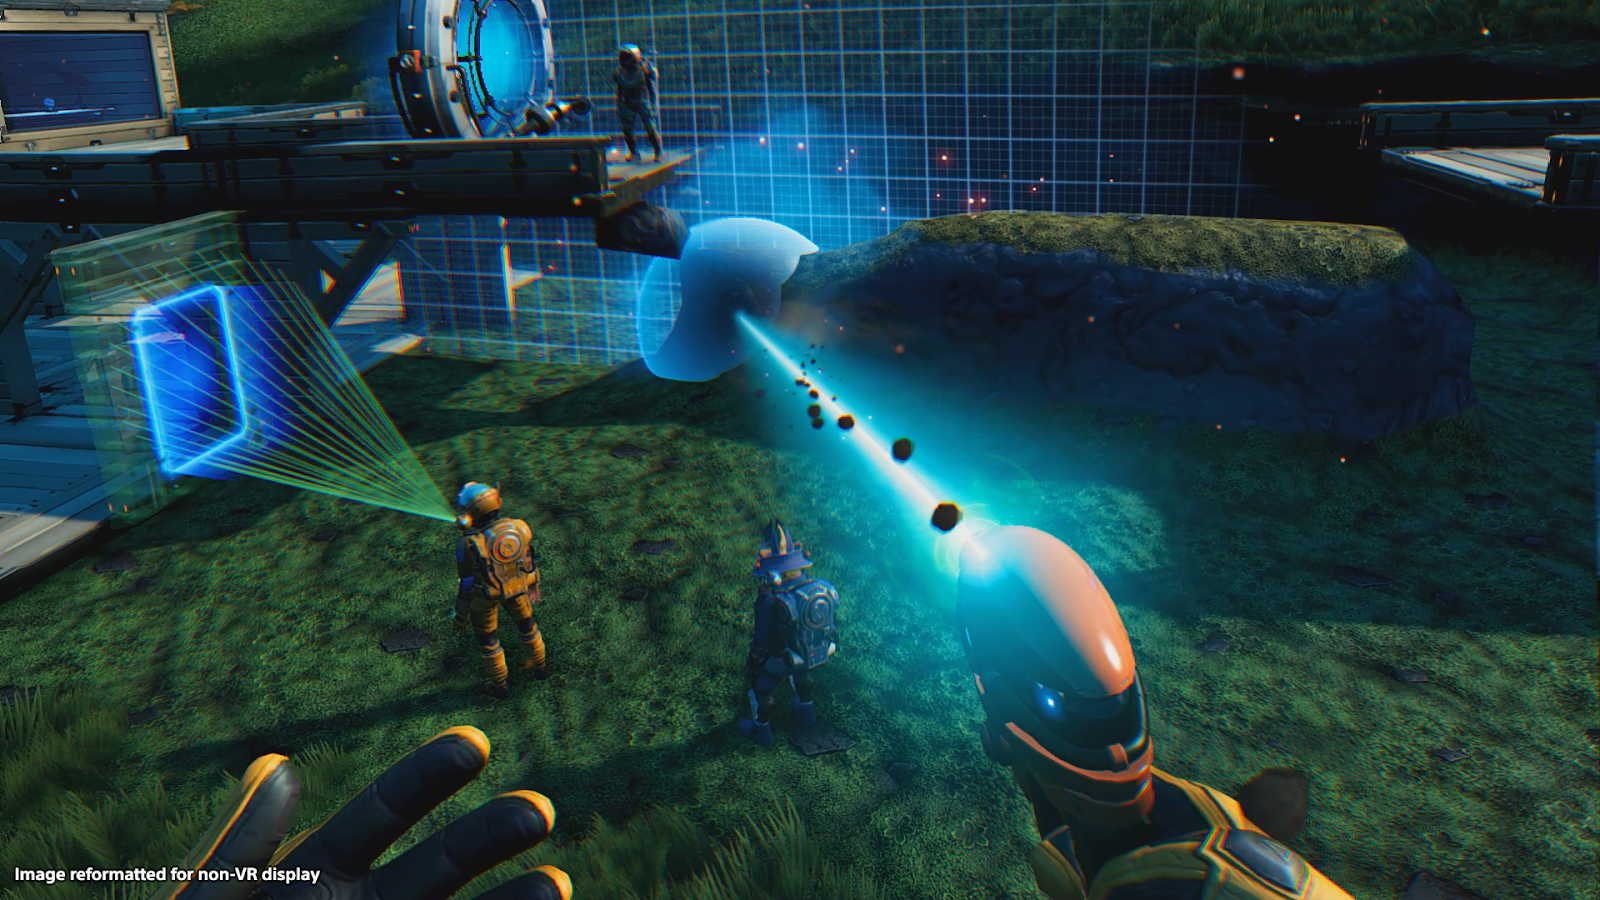 I Played No Man's Sky VR And Almost Punched Sean Murray In The Face